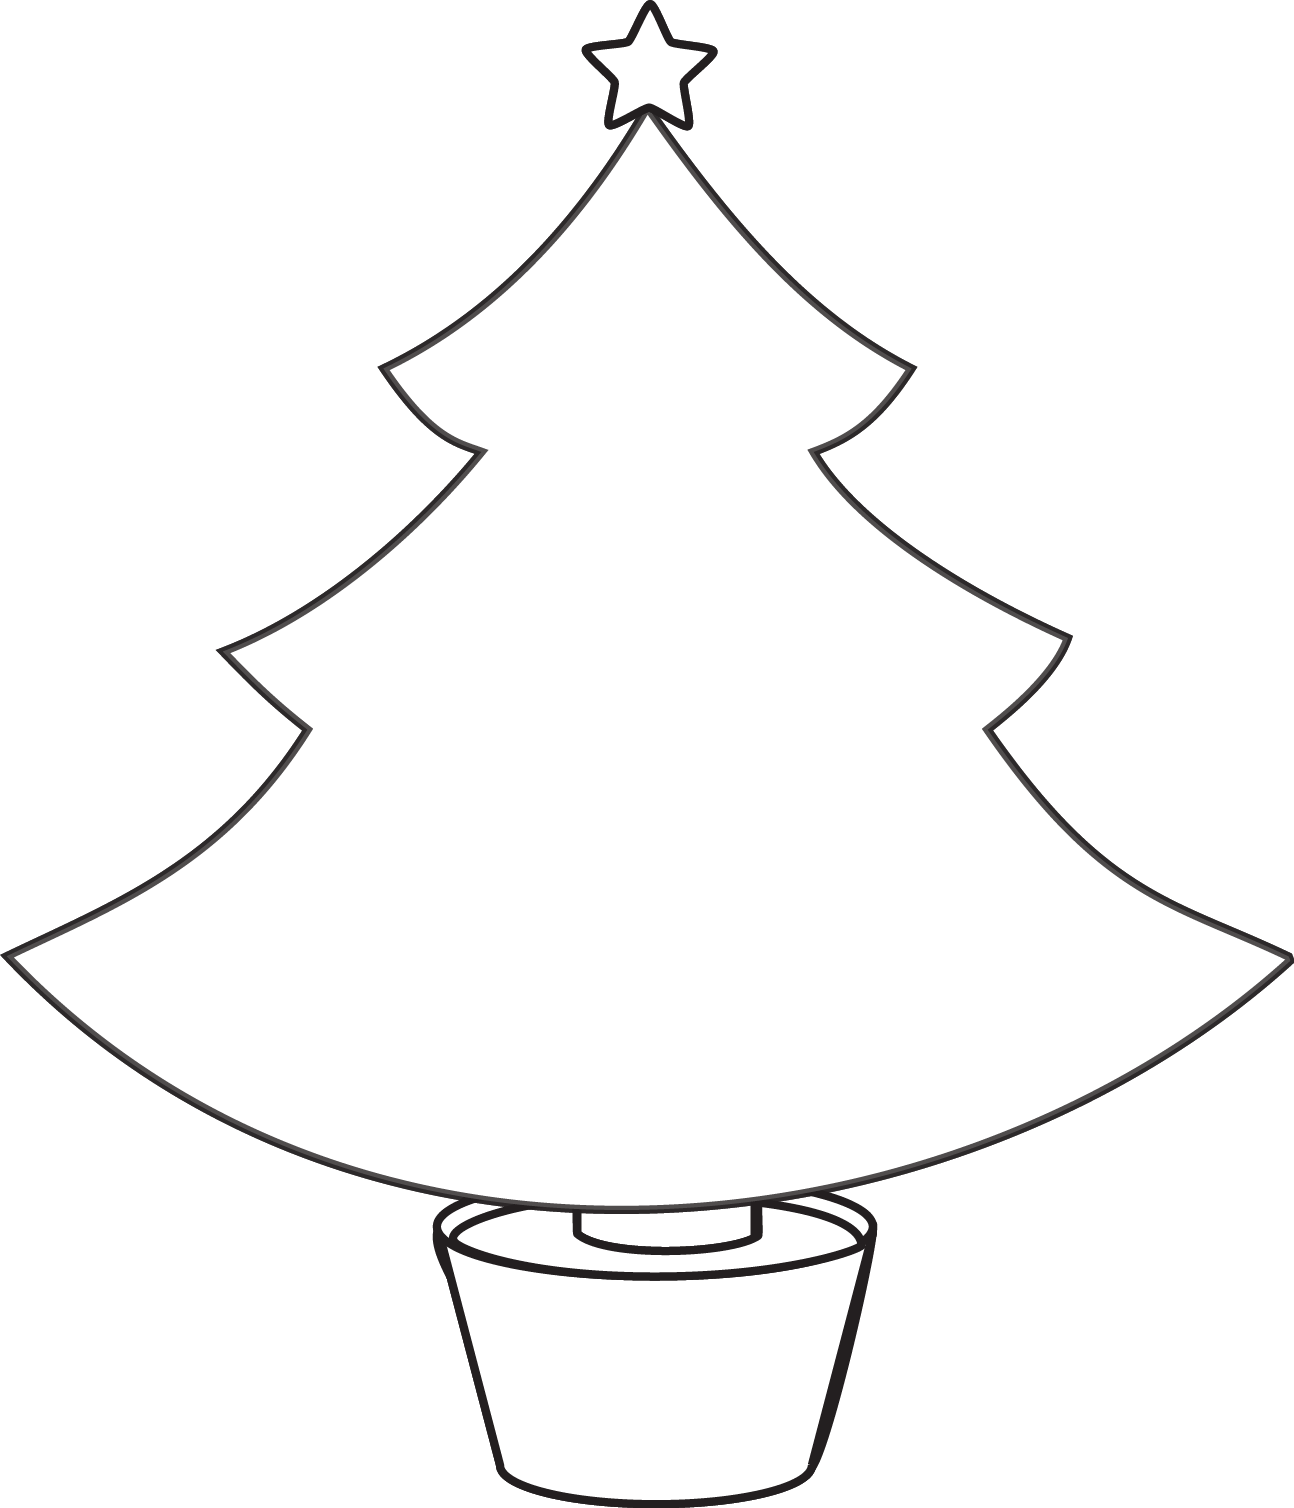 Christmas Tree Clipart Black And White.Simple Xmas Tree Drawing At Getdrawings Com Free For